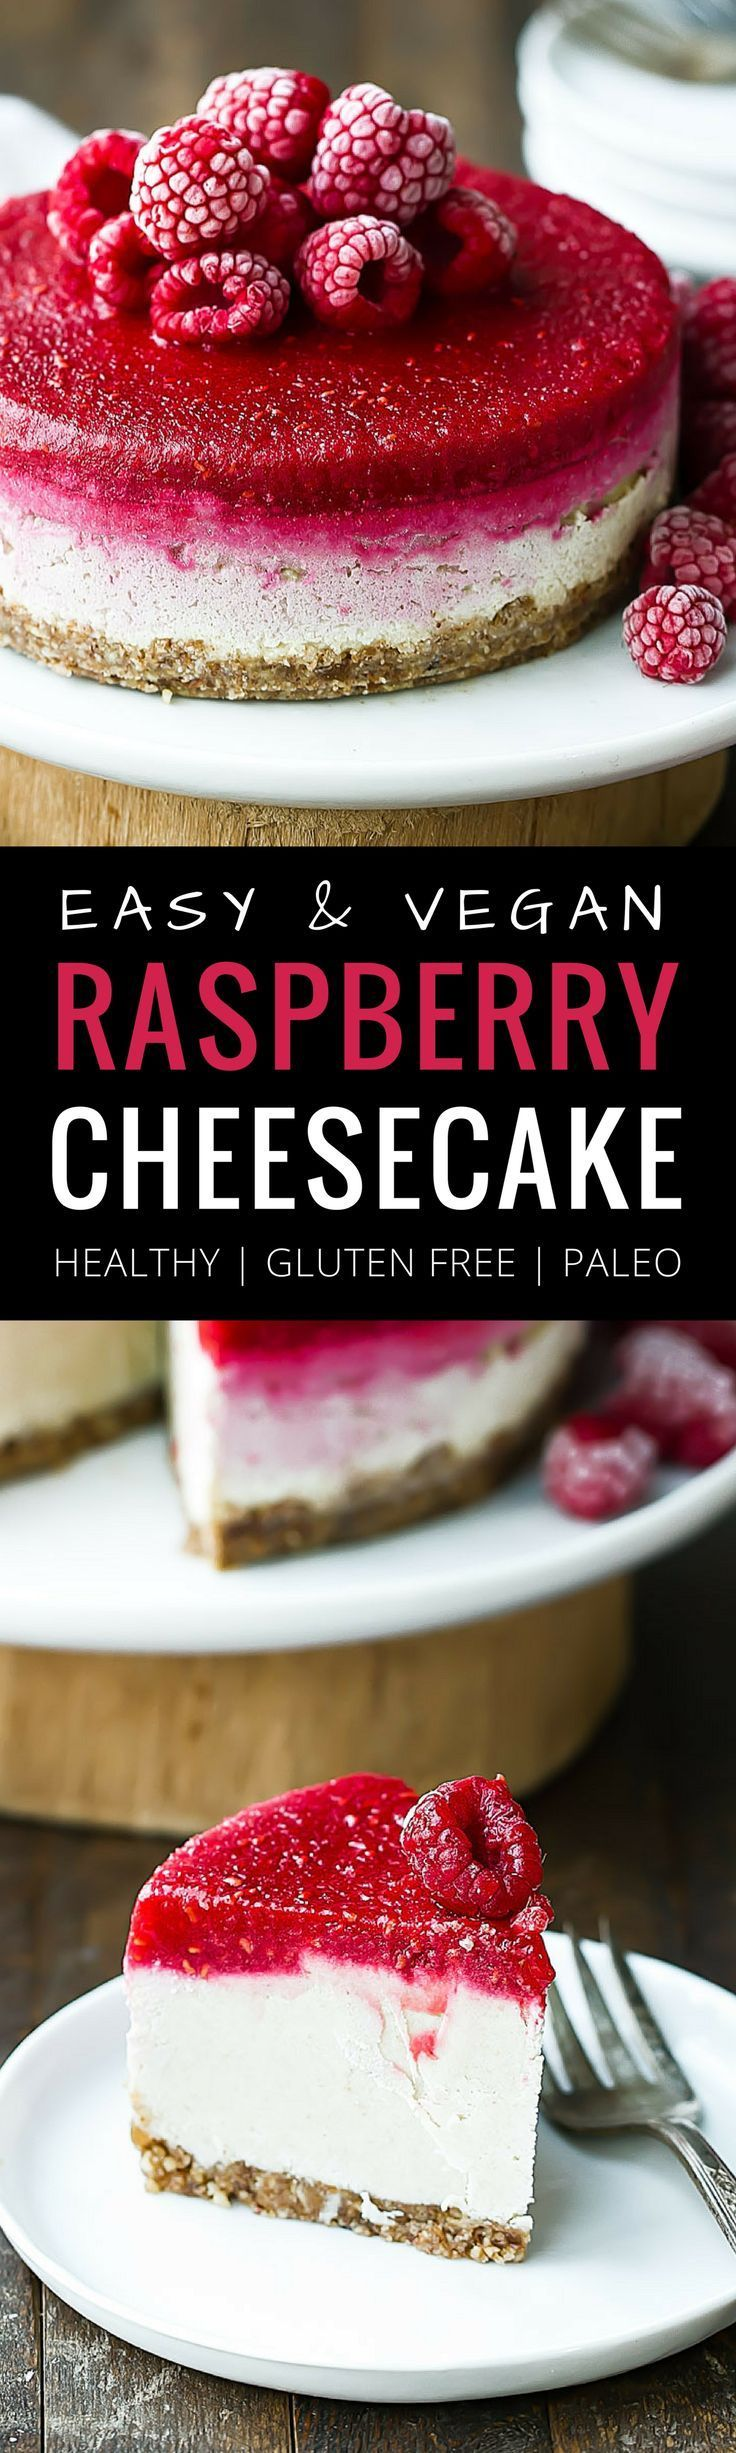 Easy Vegan Raspberry Cheesecake.